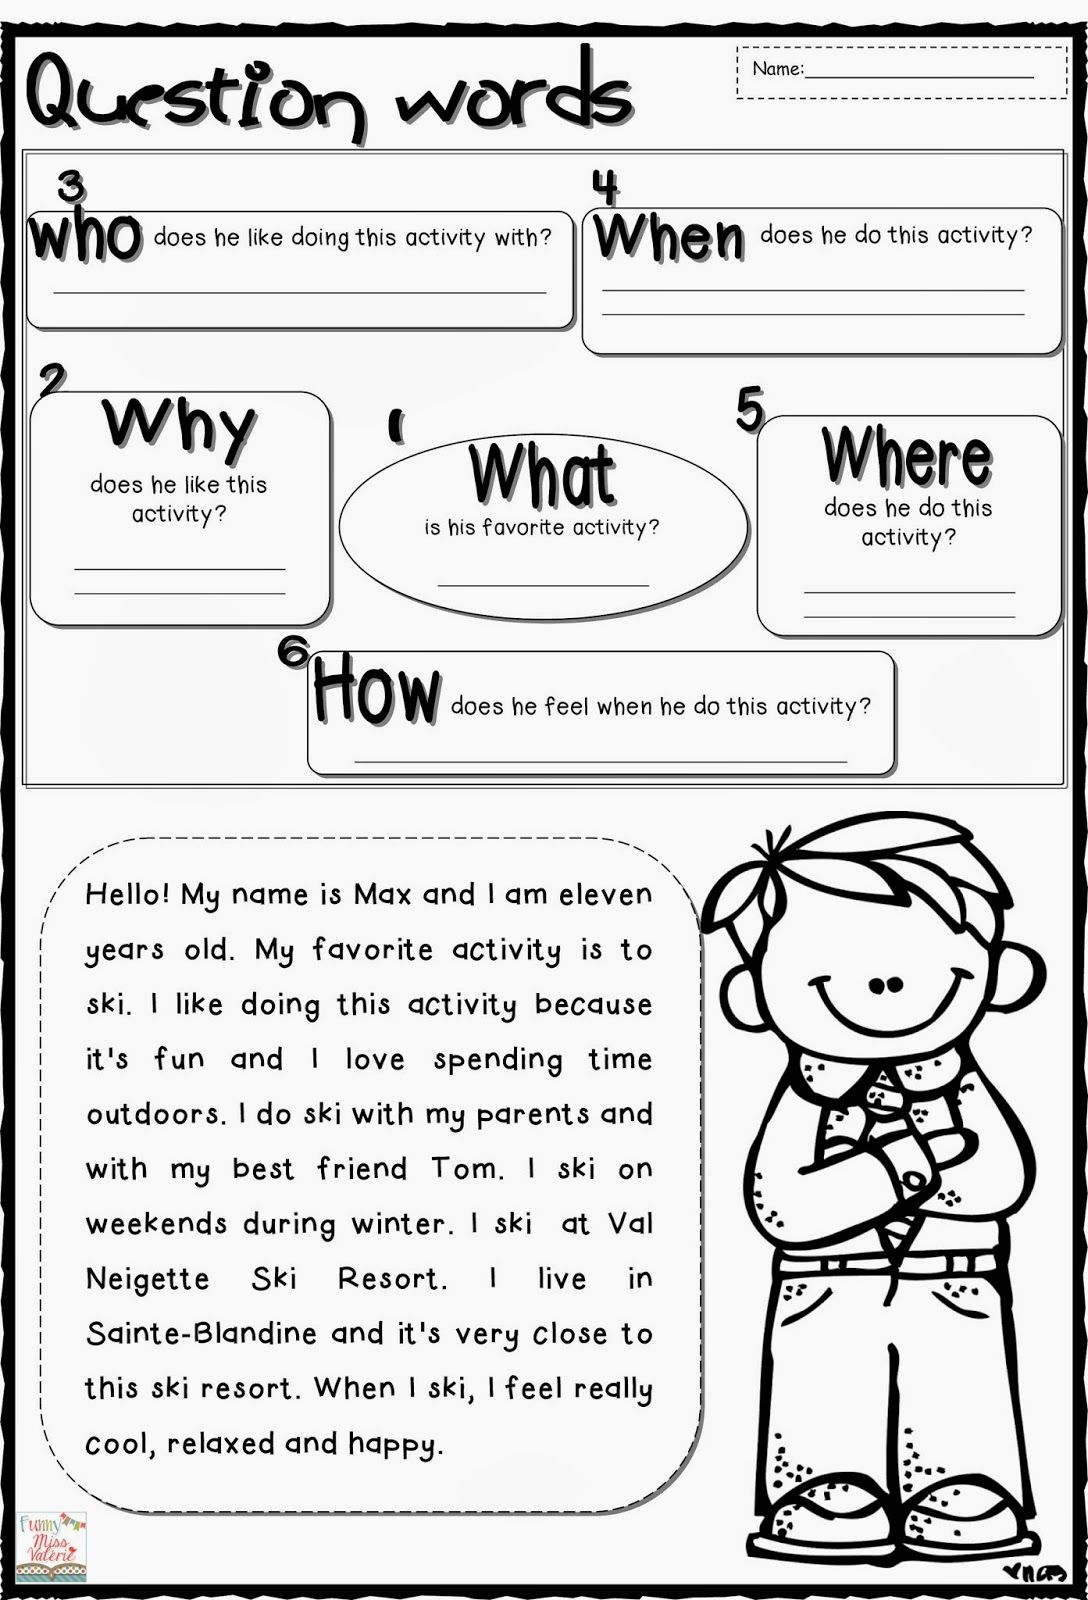 hight resolution of Question Words   Reading comprehension worksheets